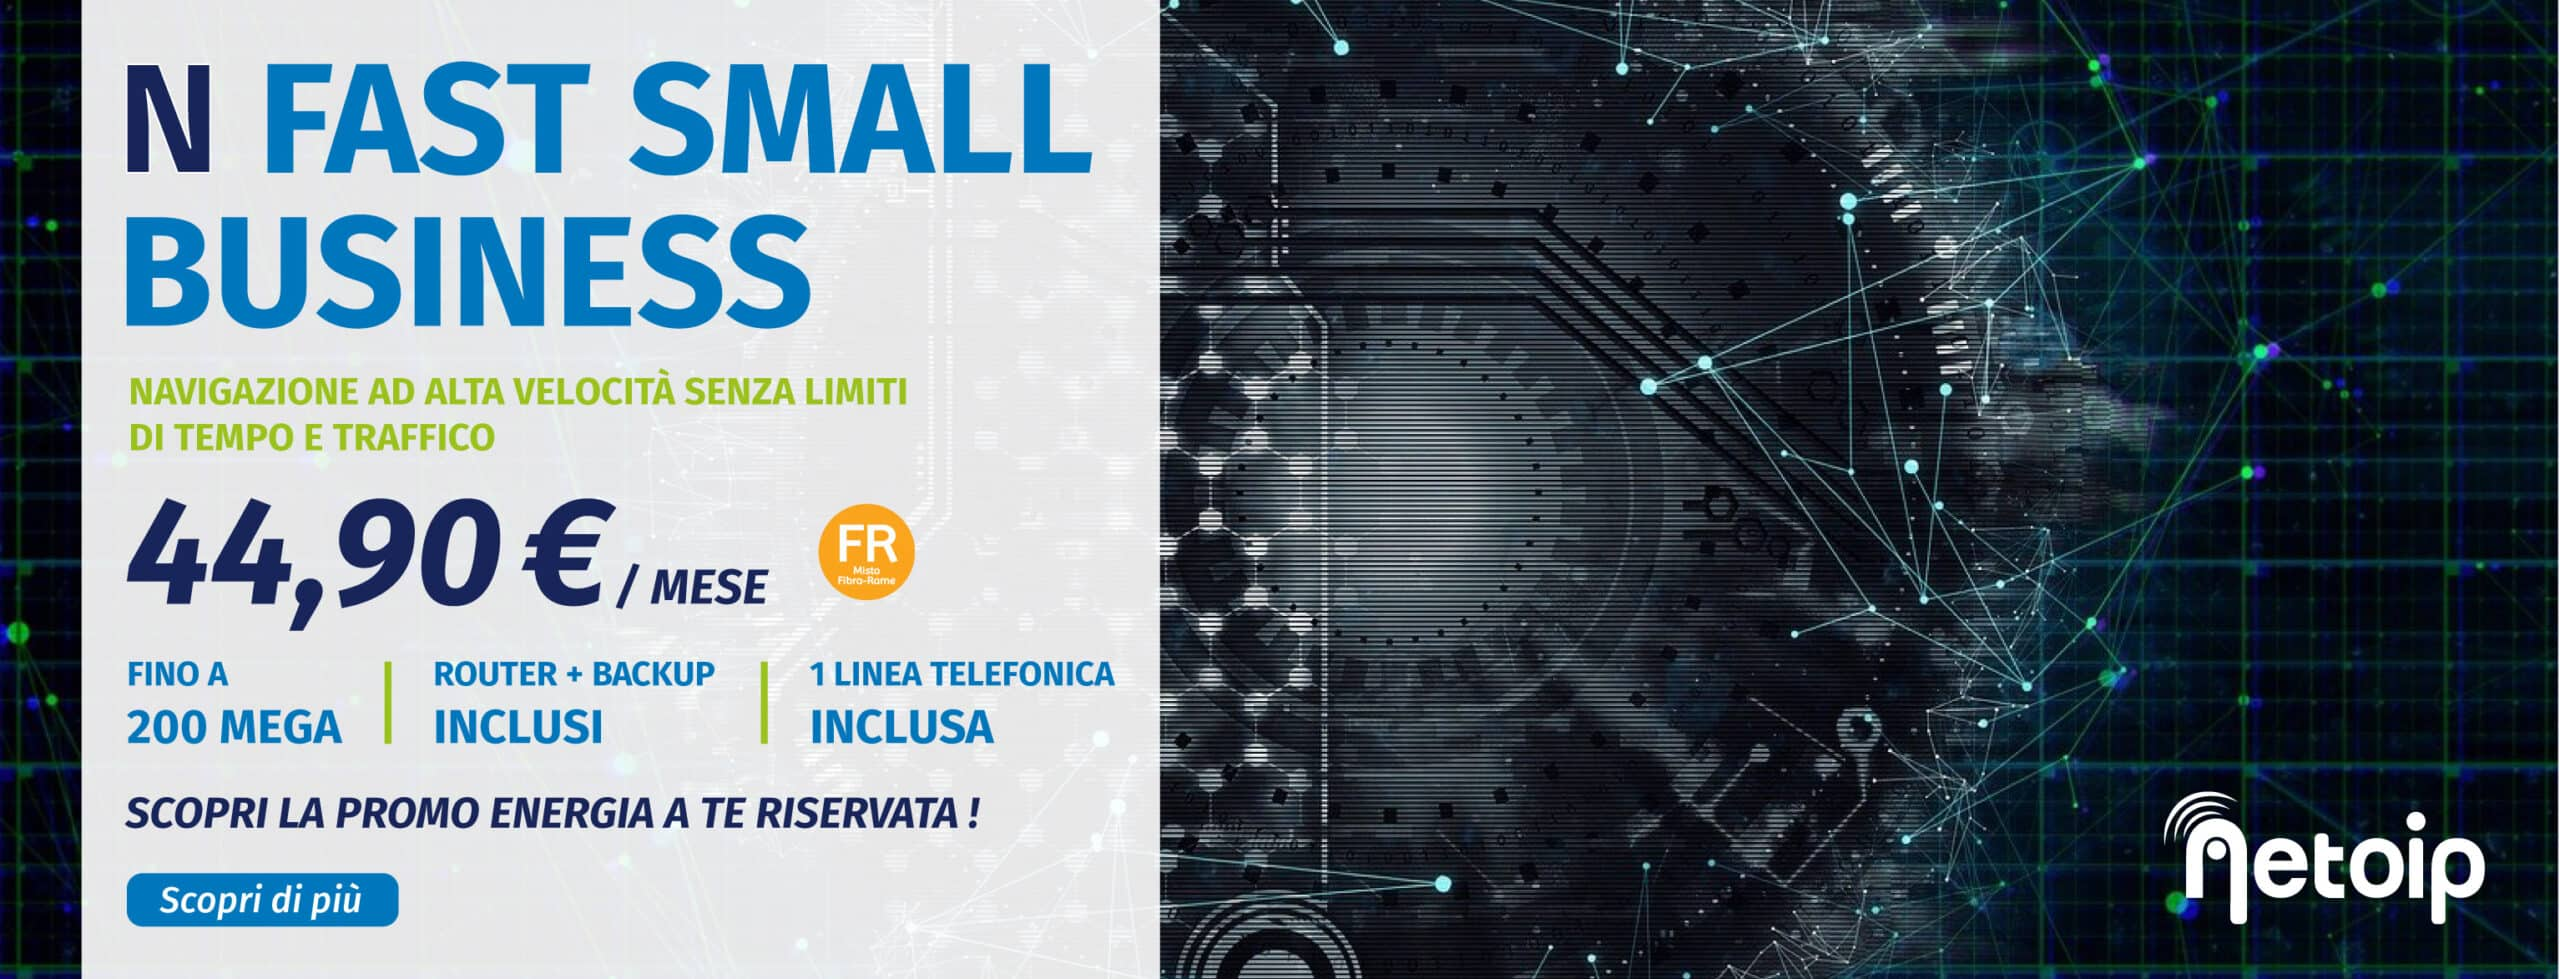 N FAST SMALL BUSINESS - FTTC